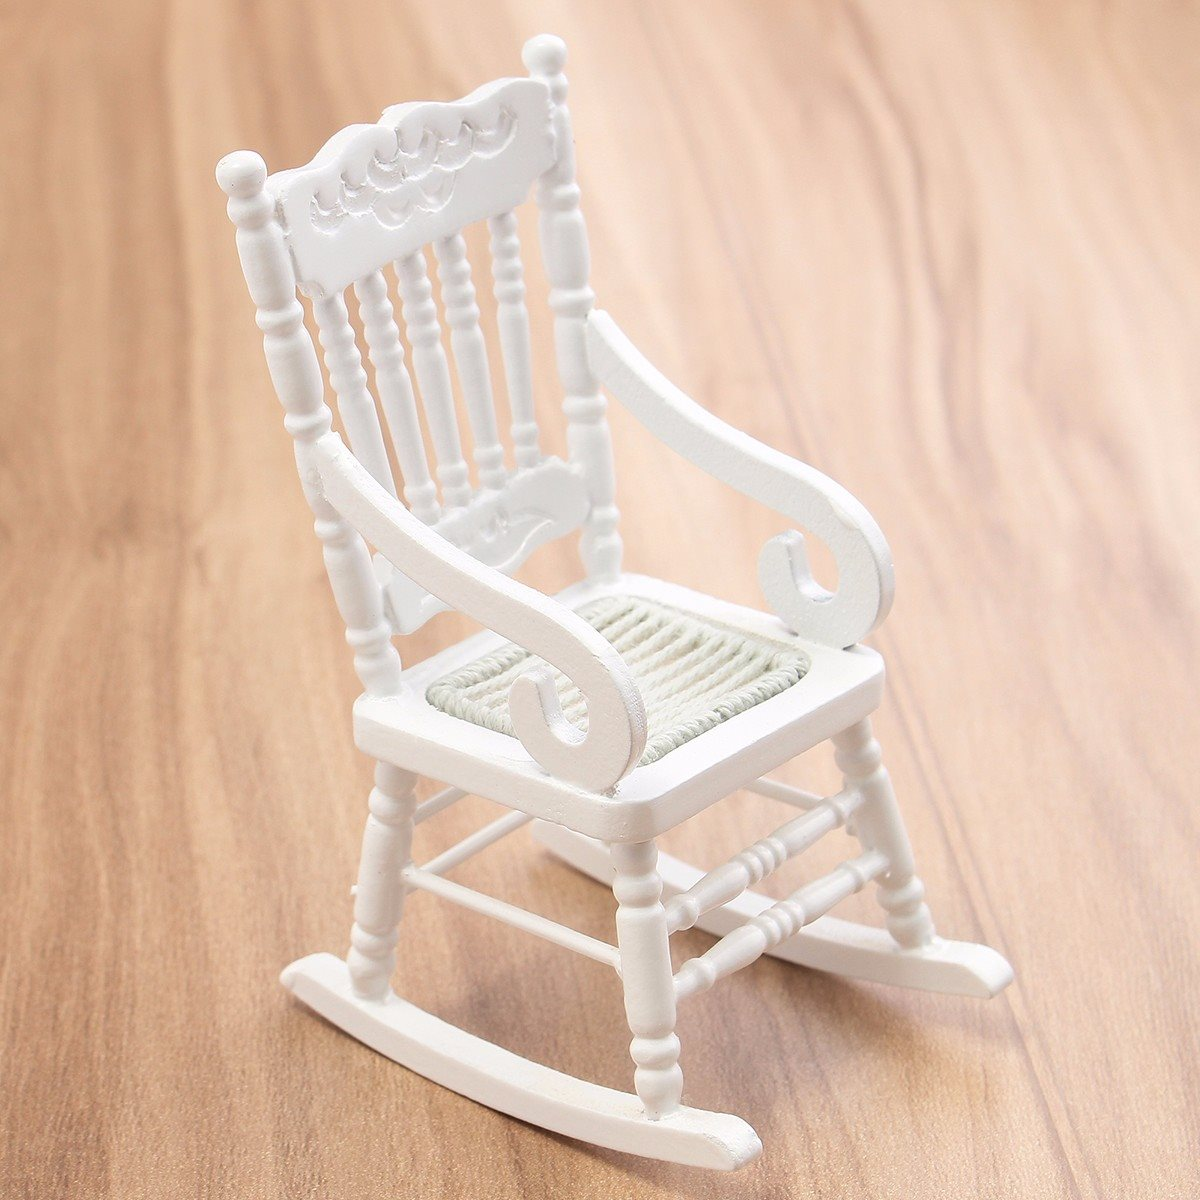 Rope Bottom Chair Covers Argos New 1 12 Dollhouse Miniature Furniture White Wooden